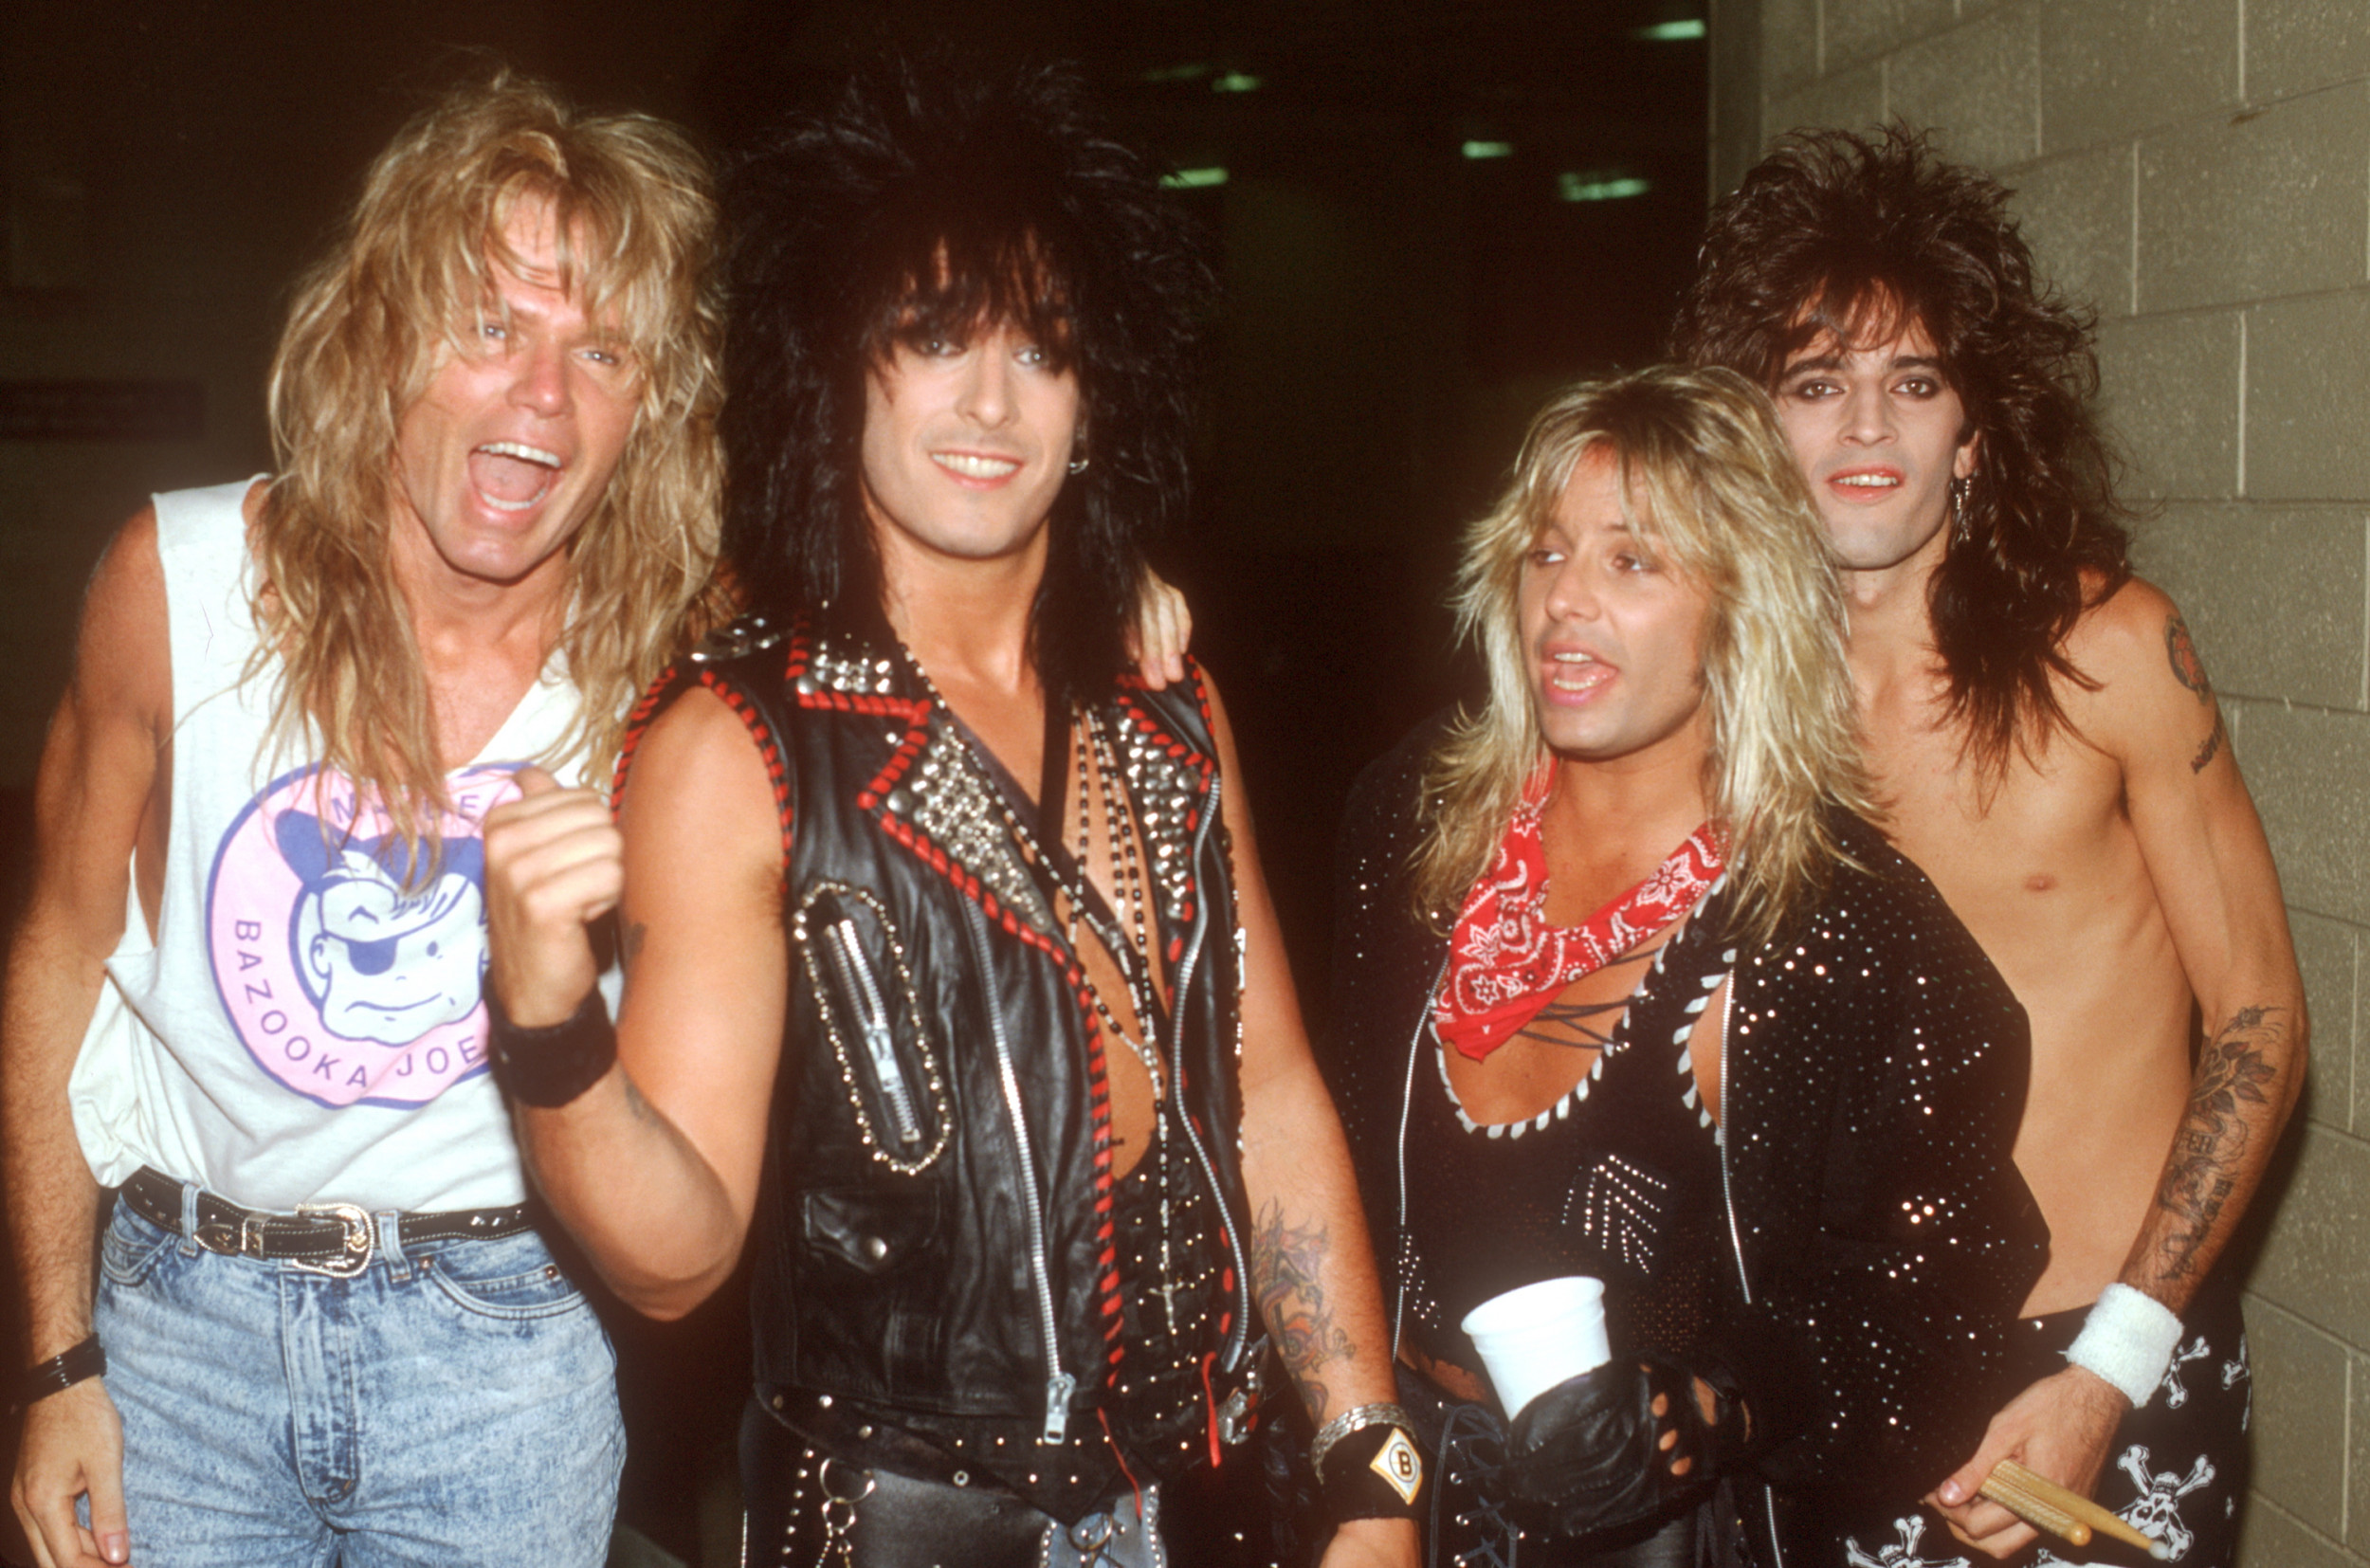 Mötley Crüe Reunion Tour: How to Buy Tickets